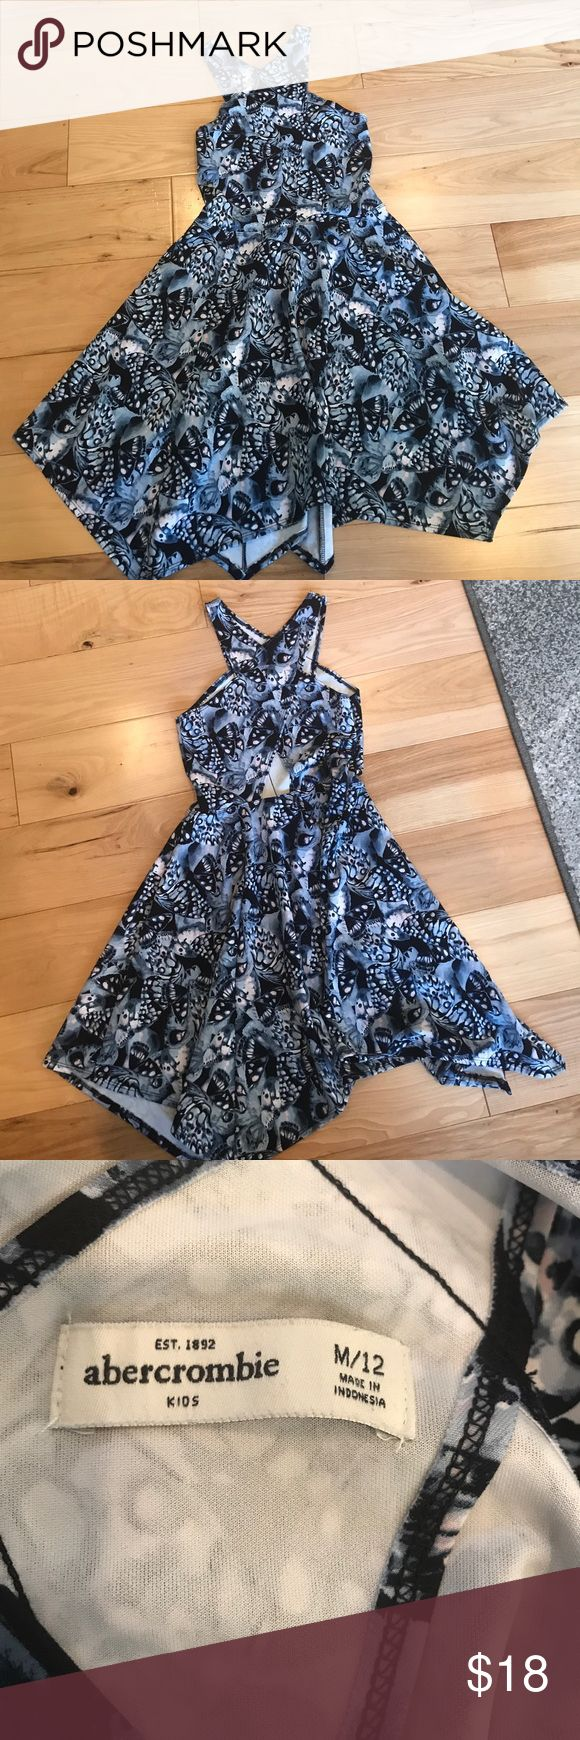 Adorable kids Abercrombie dress Girls beautiful dress, in perfect condition.  Cute little cut out in lower back. Size 12 abercrombie kids Dresses